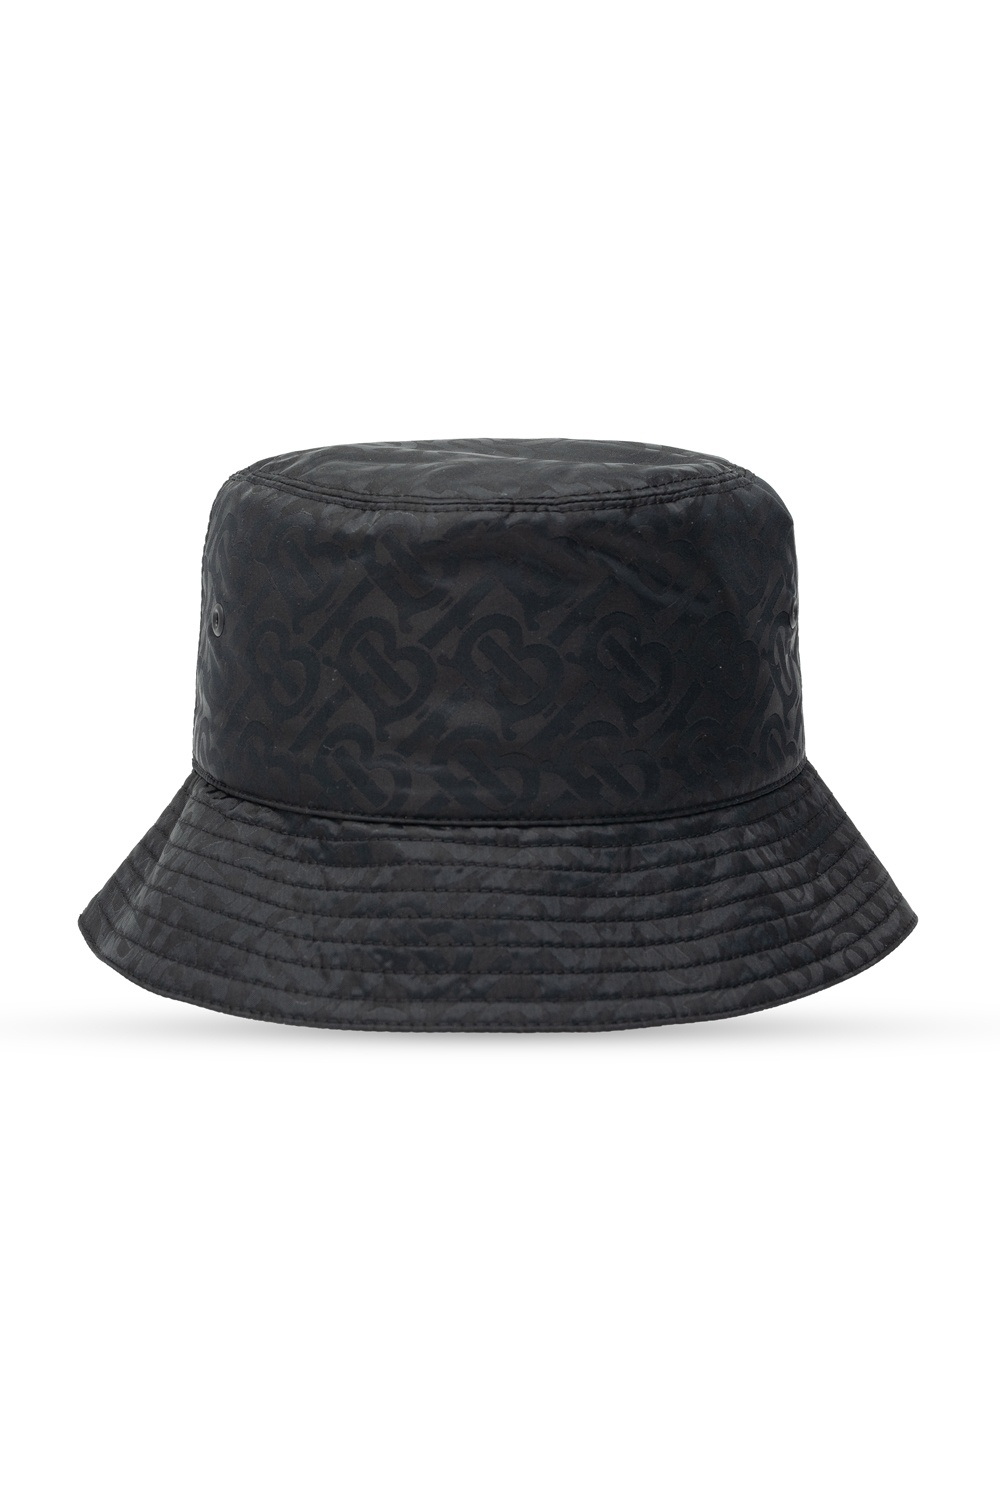 Burberry Hat with logo